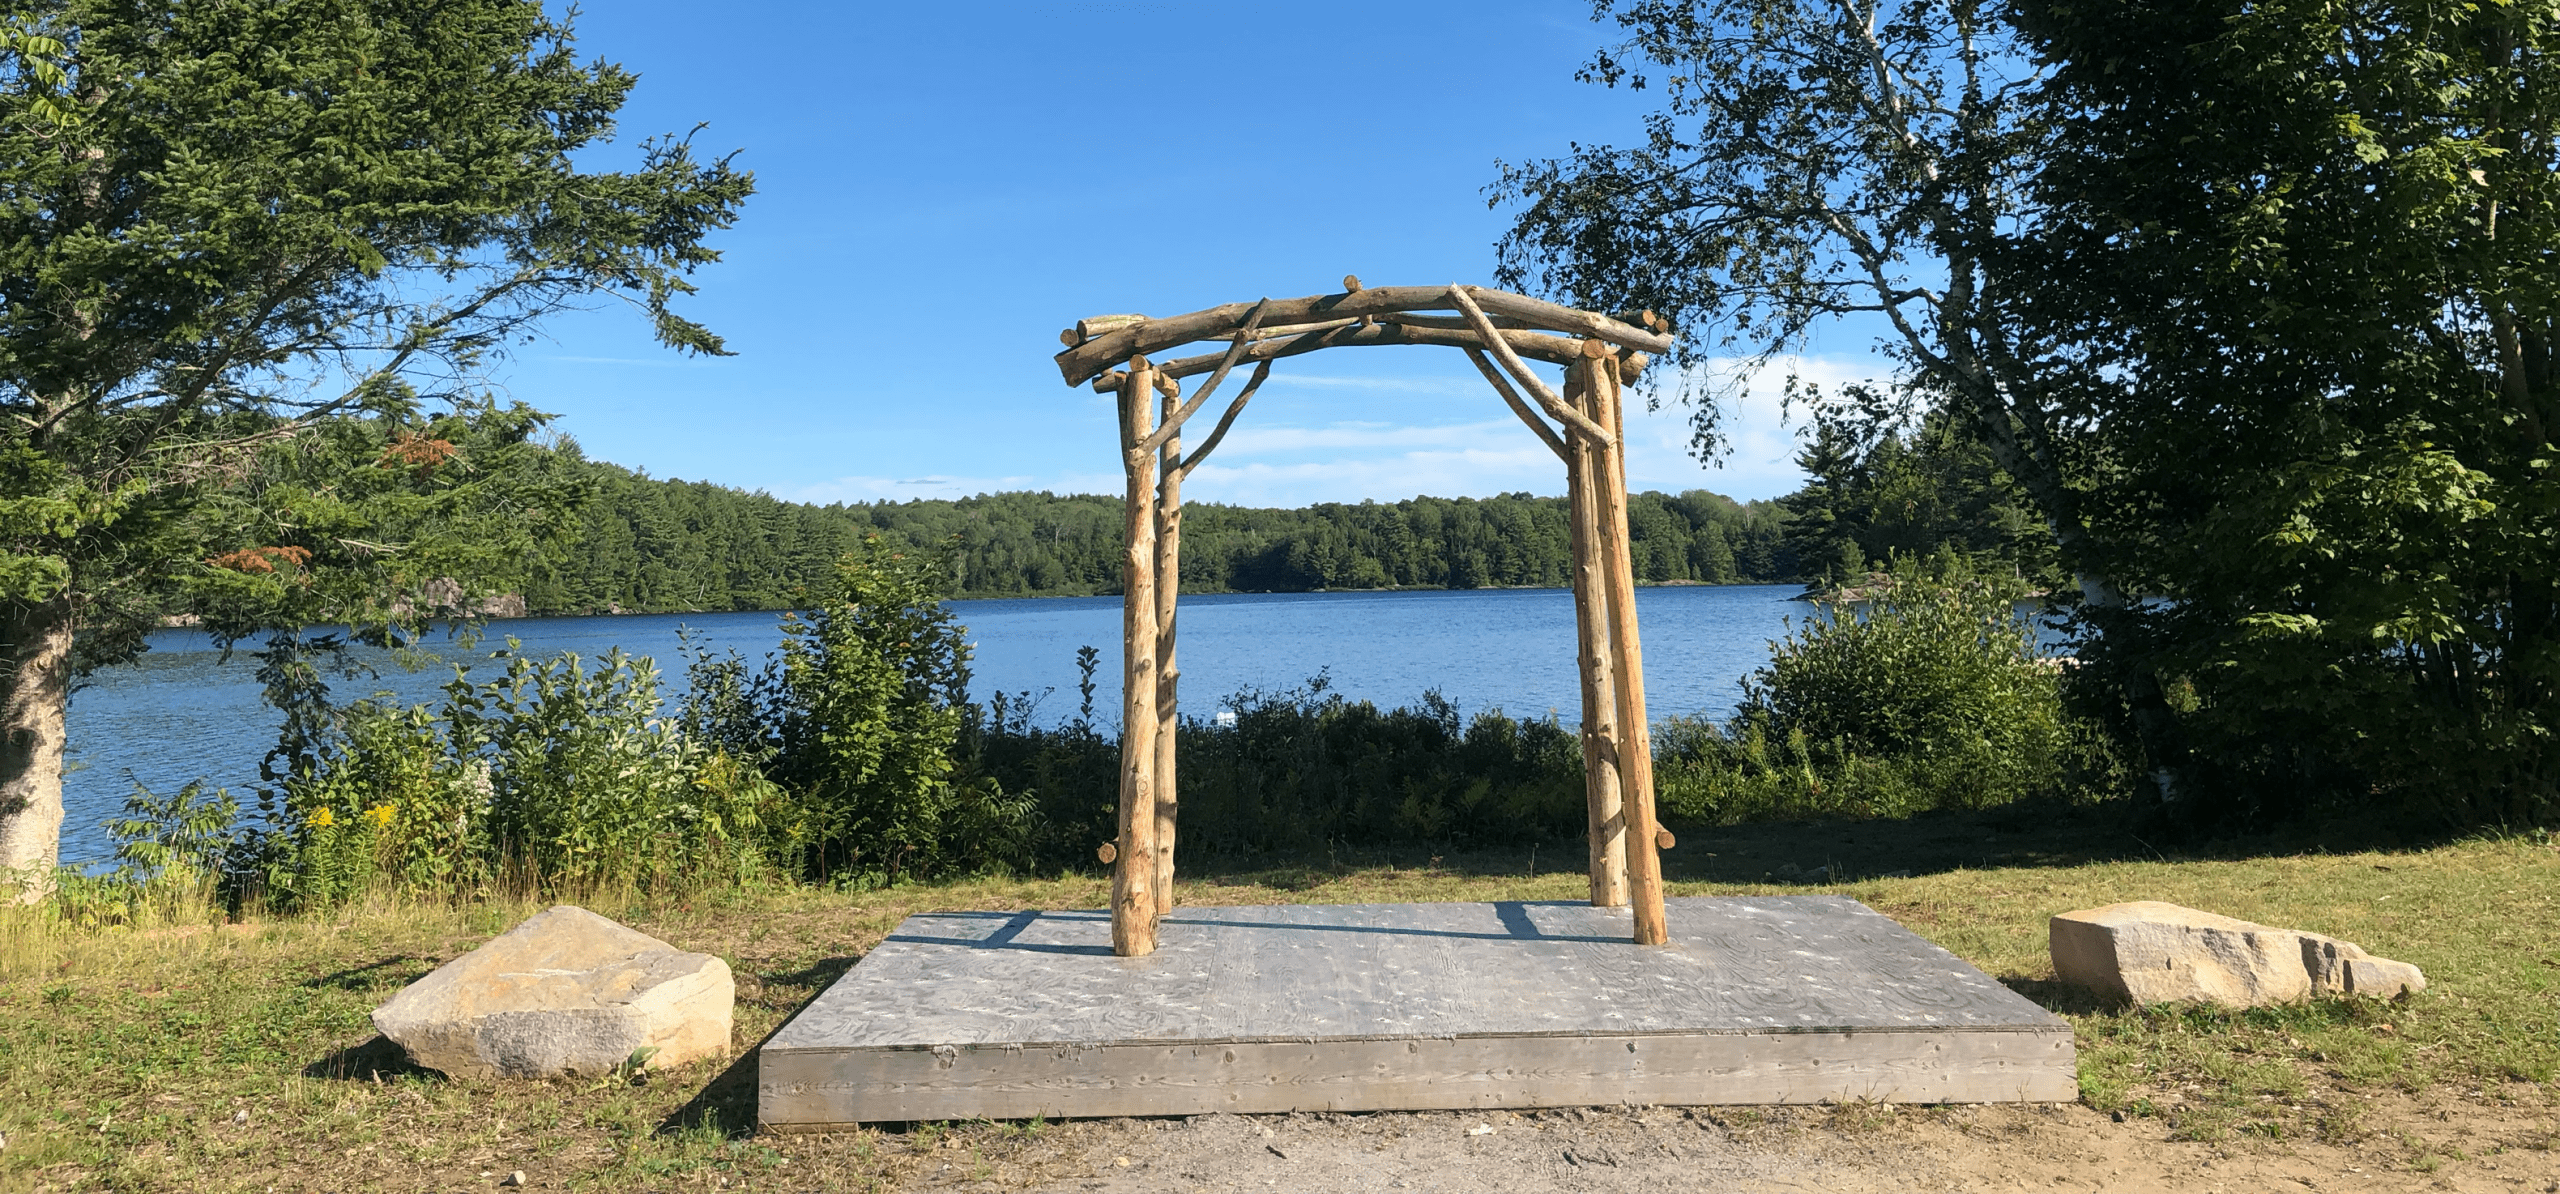 Arches by lake